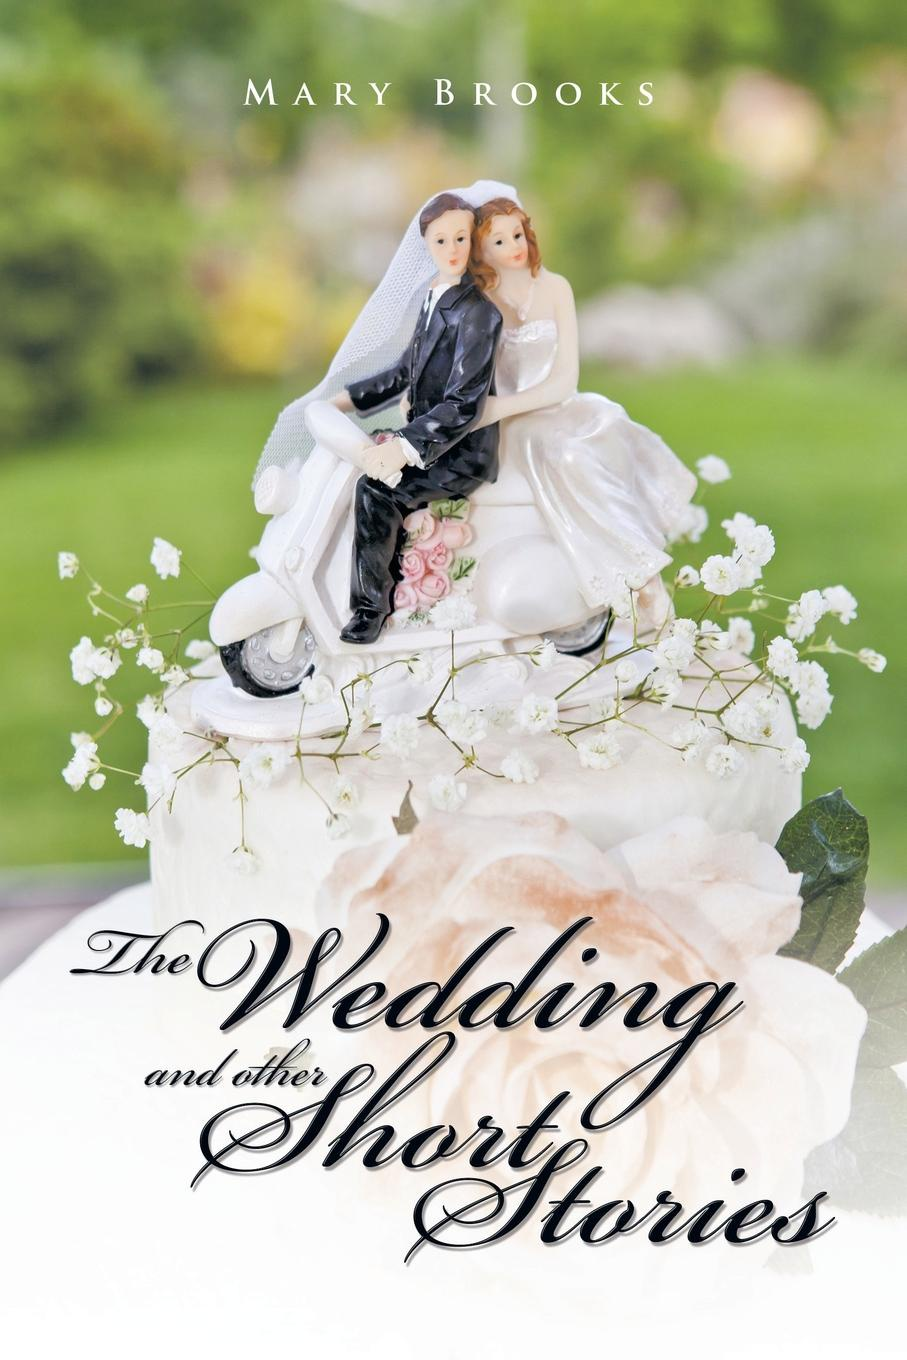 Mary Brooks The Wedding and Other Short Stories mary brooks water lilies and other short stories